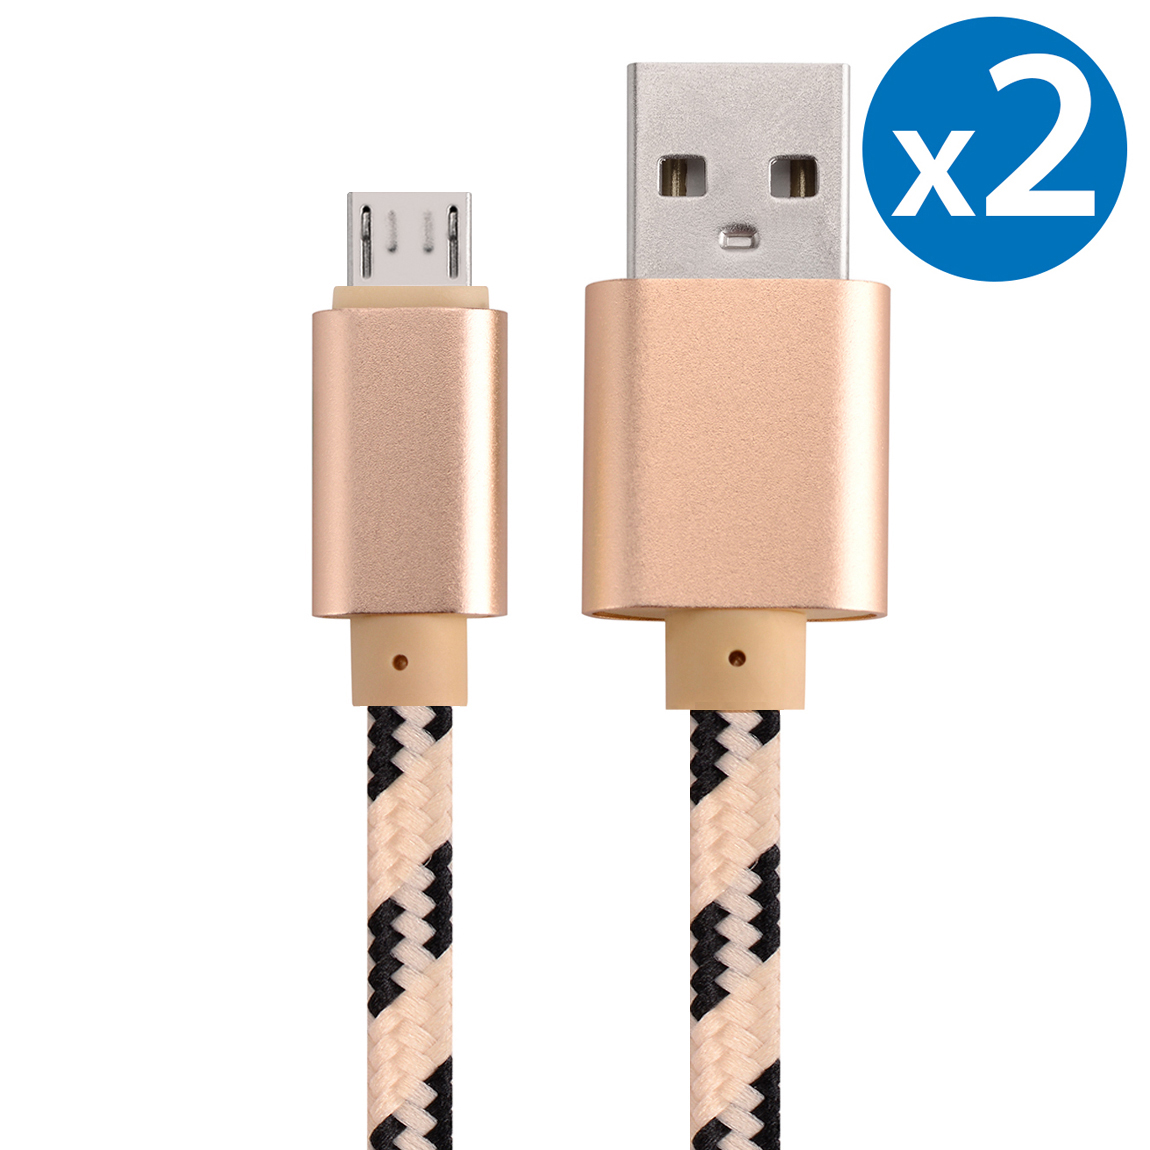 2x Micro USB Cable Charger For Android, FREEDOMTECH 3ft USB to Micro USB Cable Charger Cord High Speed USB2.0 Sync and Charging Cable for Samsung, HTC, Motorola, Nokia, Kindle, MP3, Tablet and More